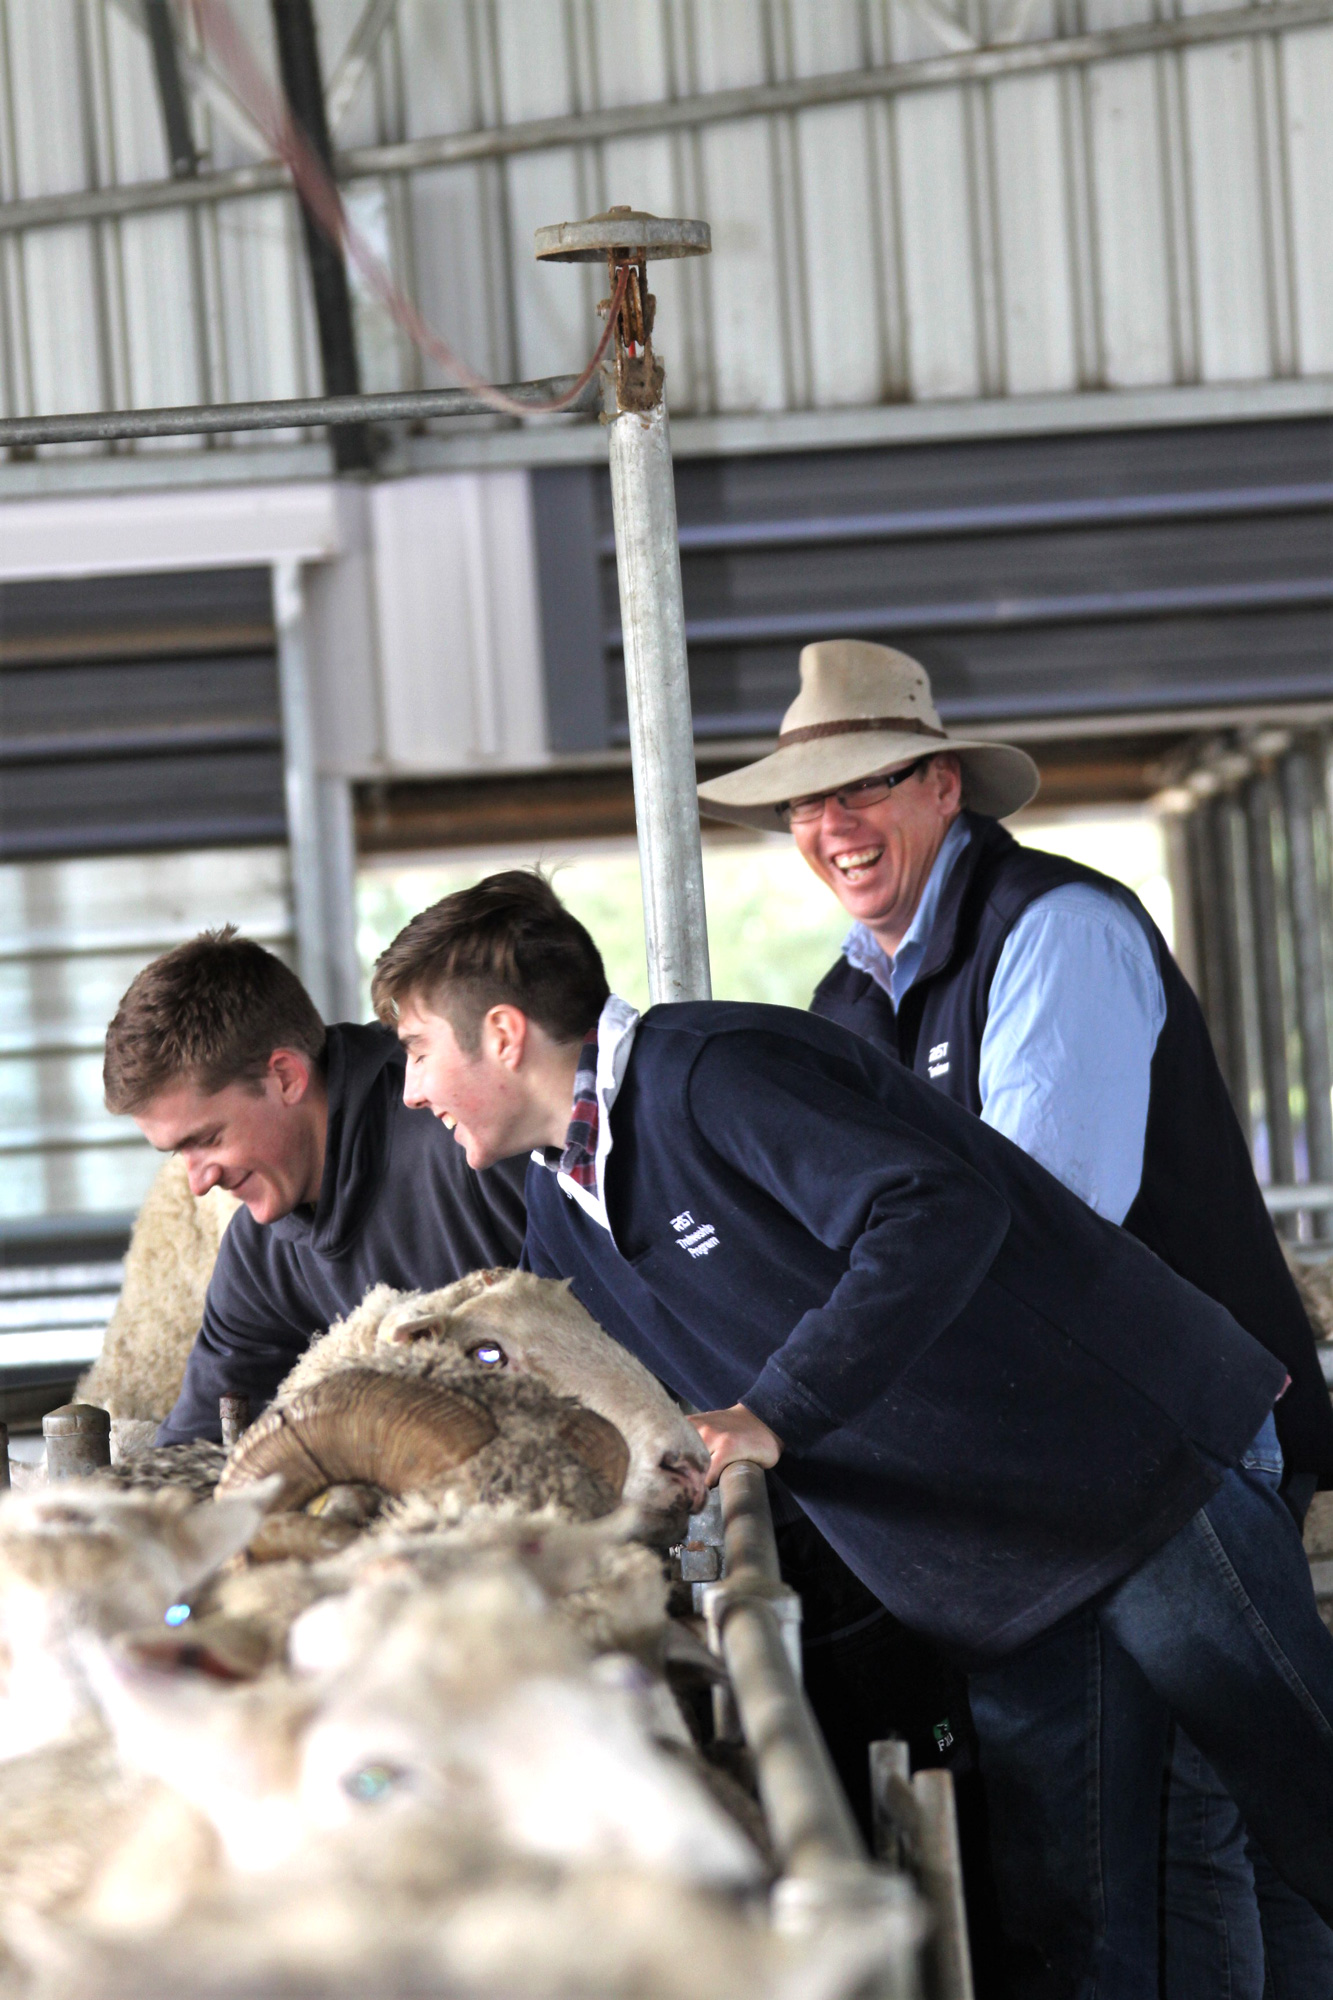 RIST sheep check 2.jpg